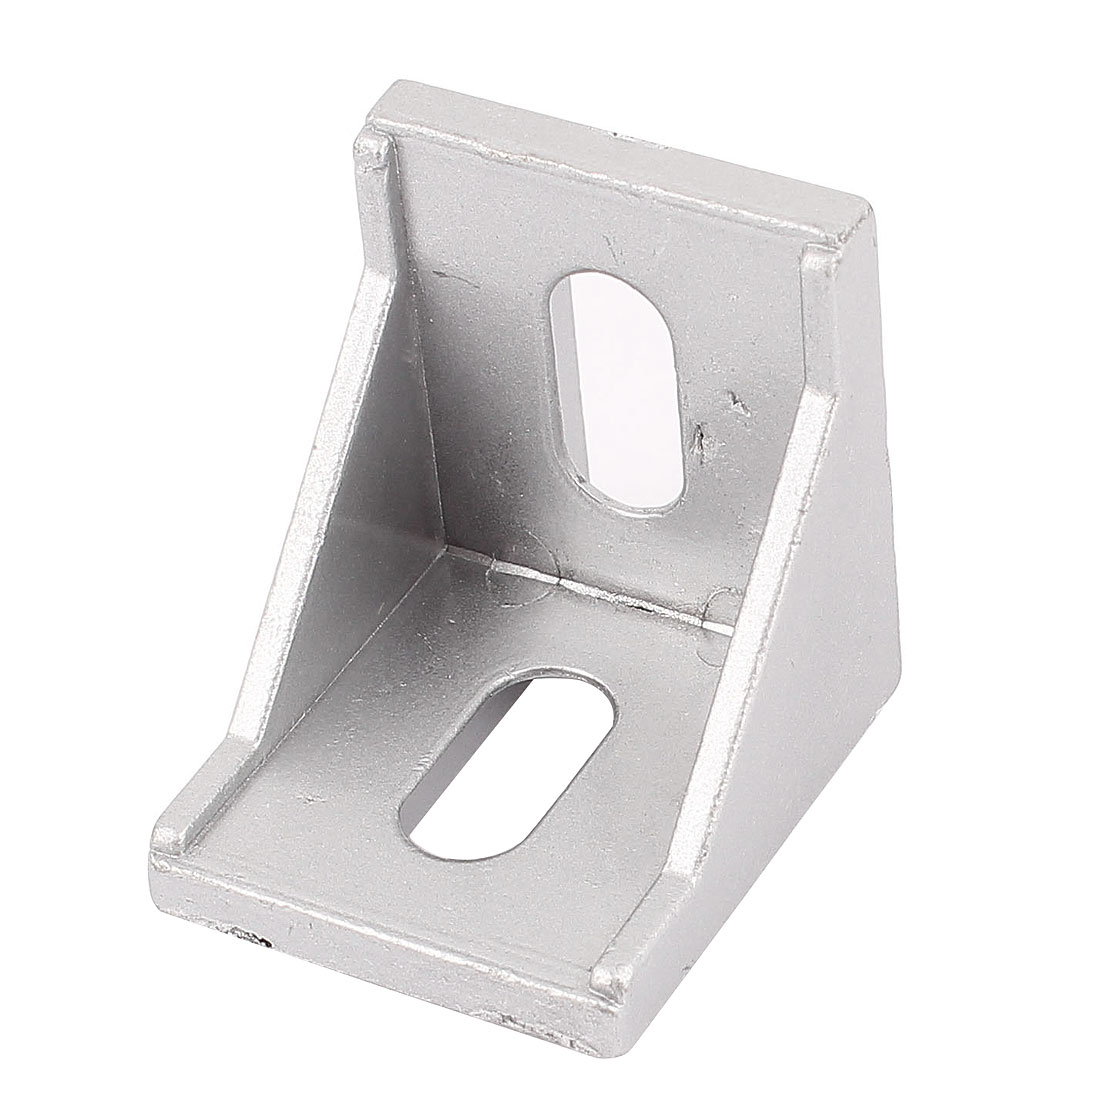 Silver Tone Aluminum Alloy 40x40x35mm Corner Brace Angle Bracket Support